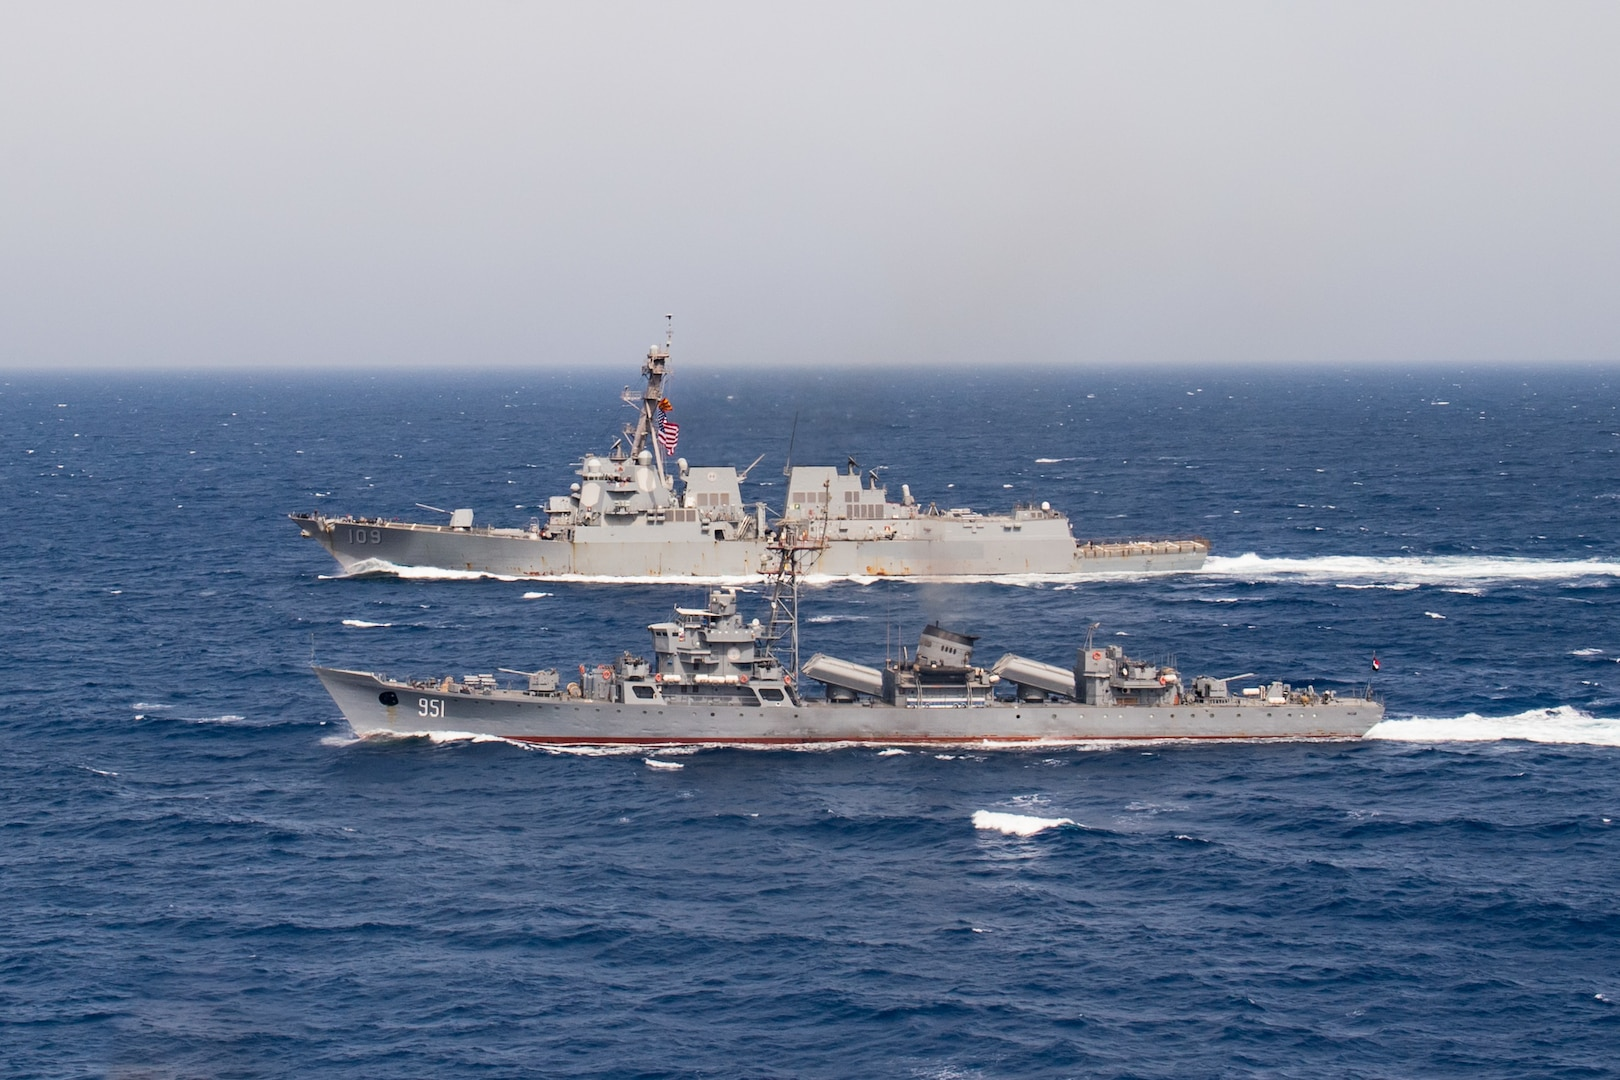 The Egyptian Navy ship El Zafer (F951), front, steams alongside the guided-missile destroyer USS Jason Dunham (DDG 109) during a passing exercise (PASSEX).  Dunham is deployed to the U.S. 5th Fleet area of operations in support of naval operations to ensure maritime stability and security in the Central region, connecting the Mediterranean and the Pacific through the western Indian Ocean and three strategic choke points. (U.S. Navy photo by Mass Communication Specialist 3rd Class Jonathan Clay/Released)